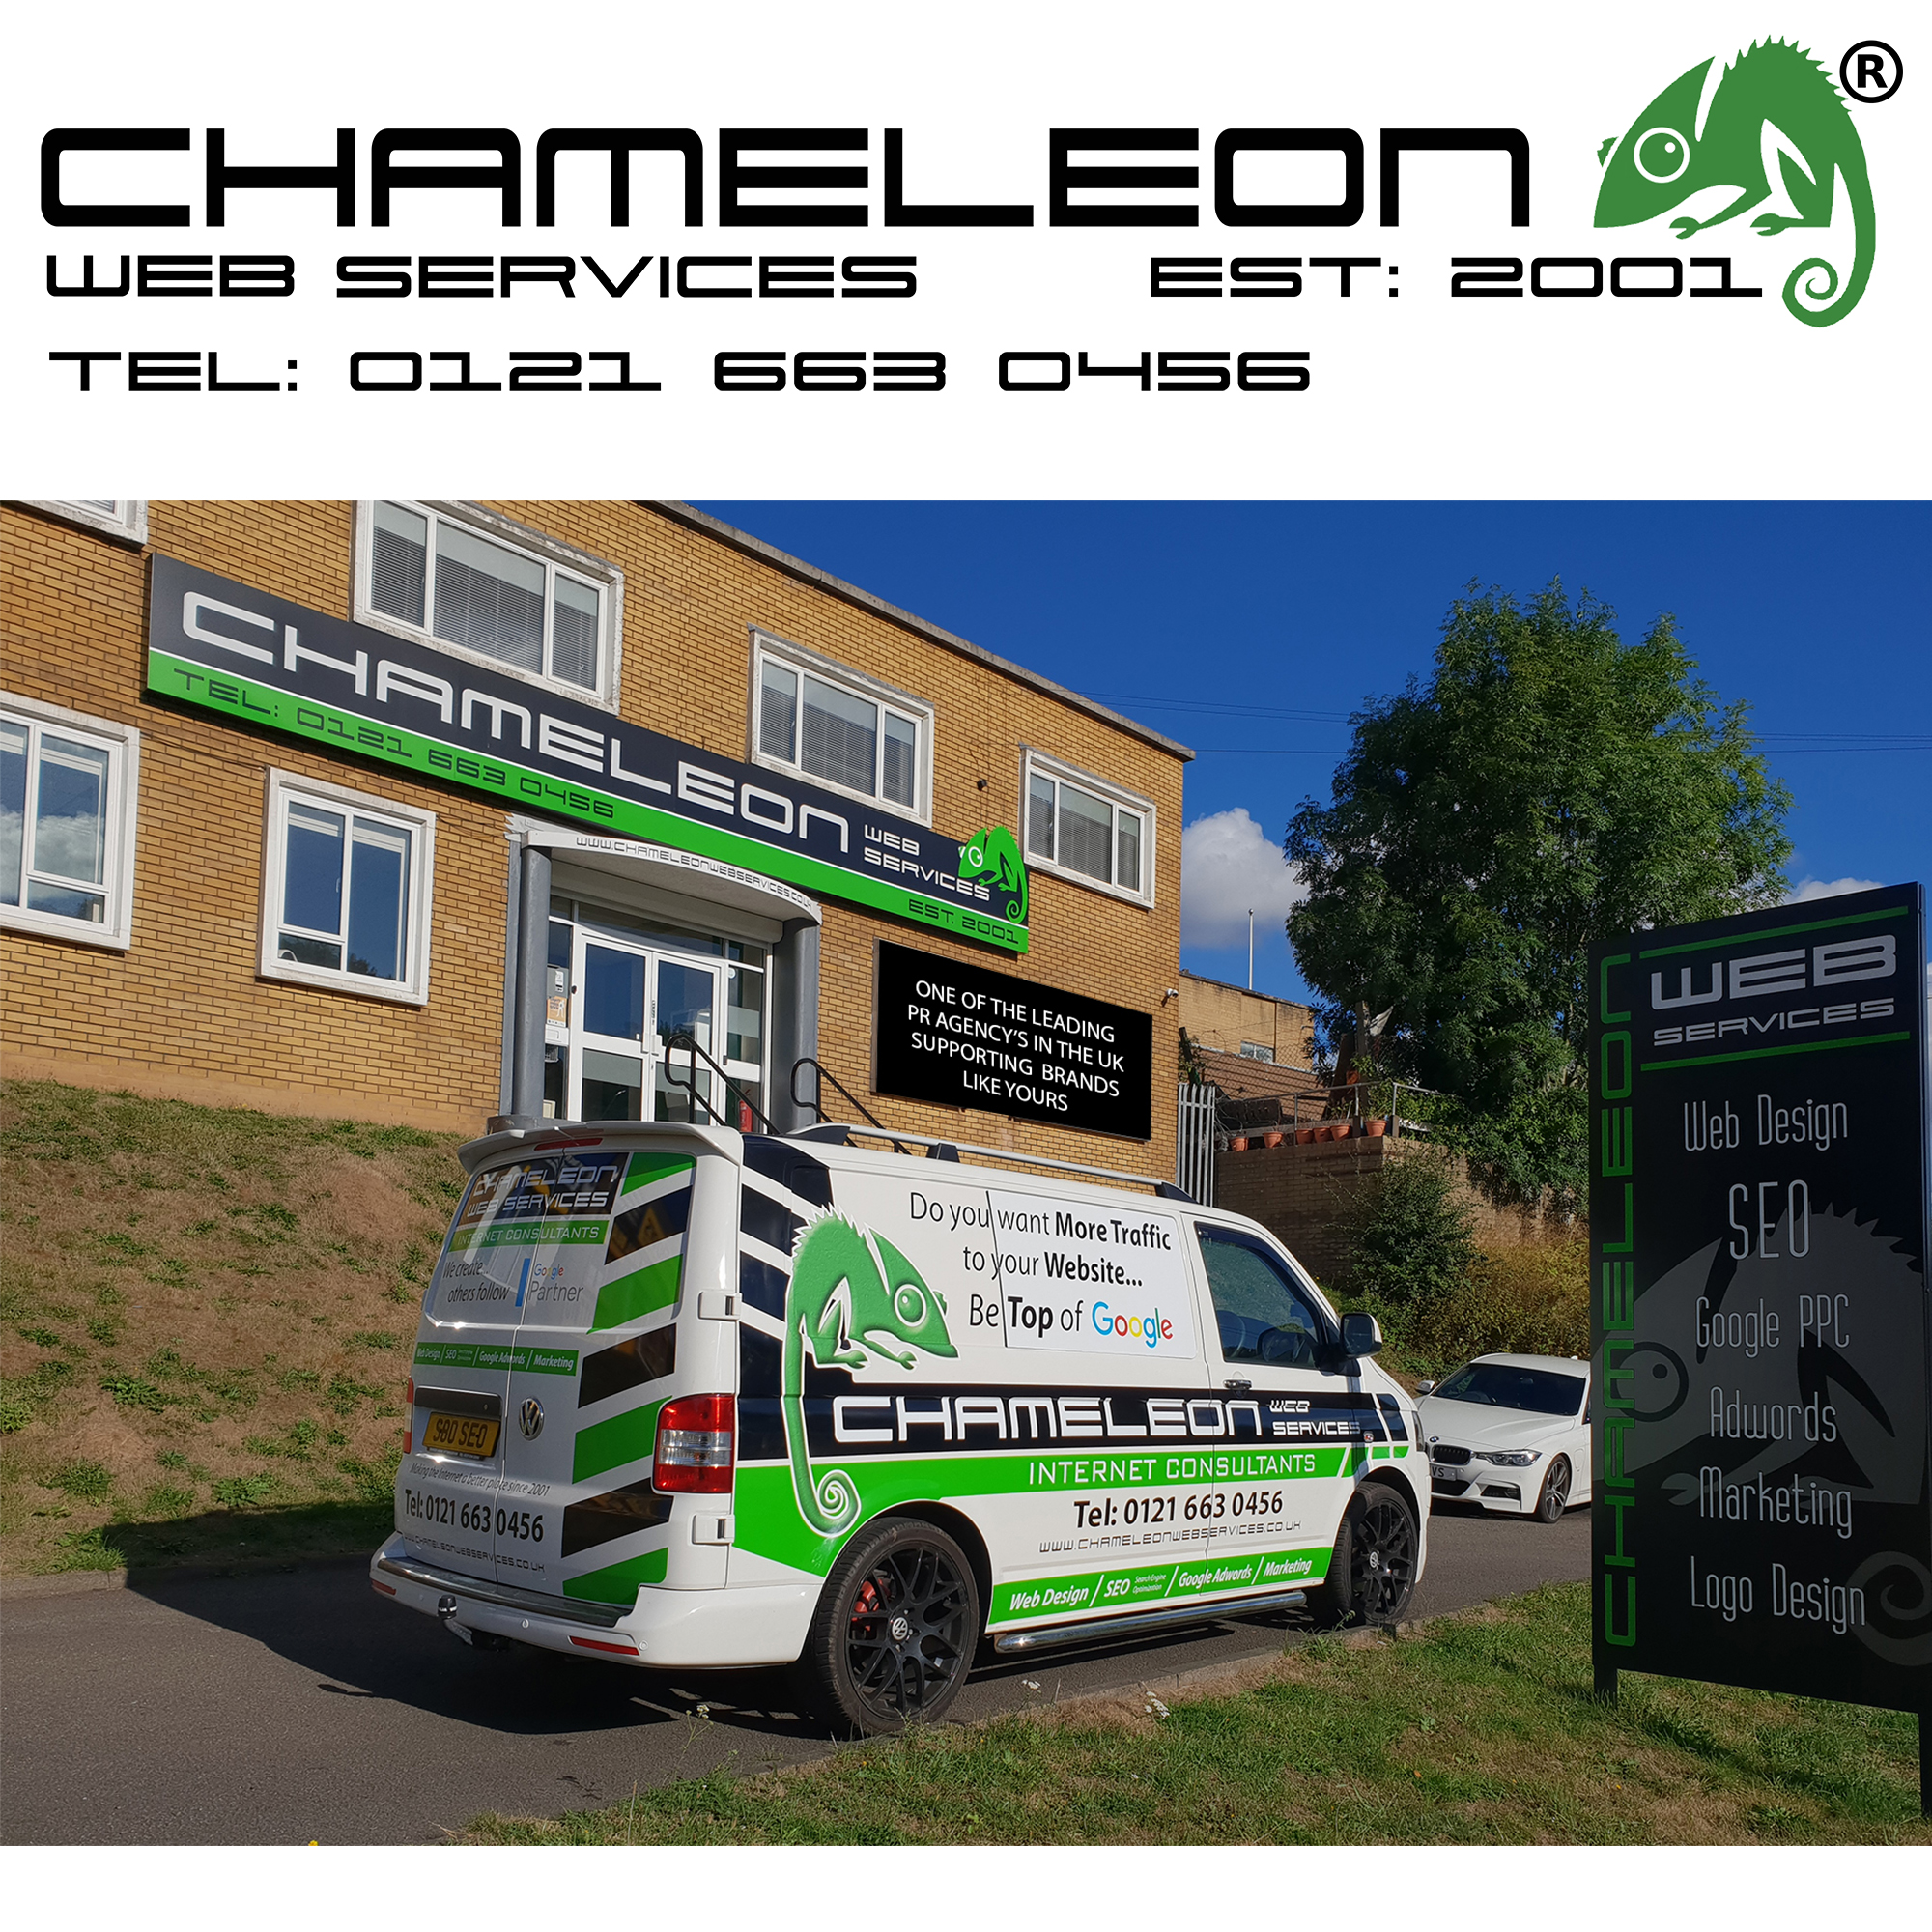 Chameleon Web Services Sharing - Post Local Ads Backpage